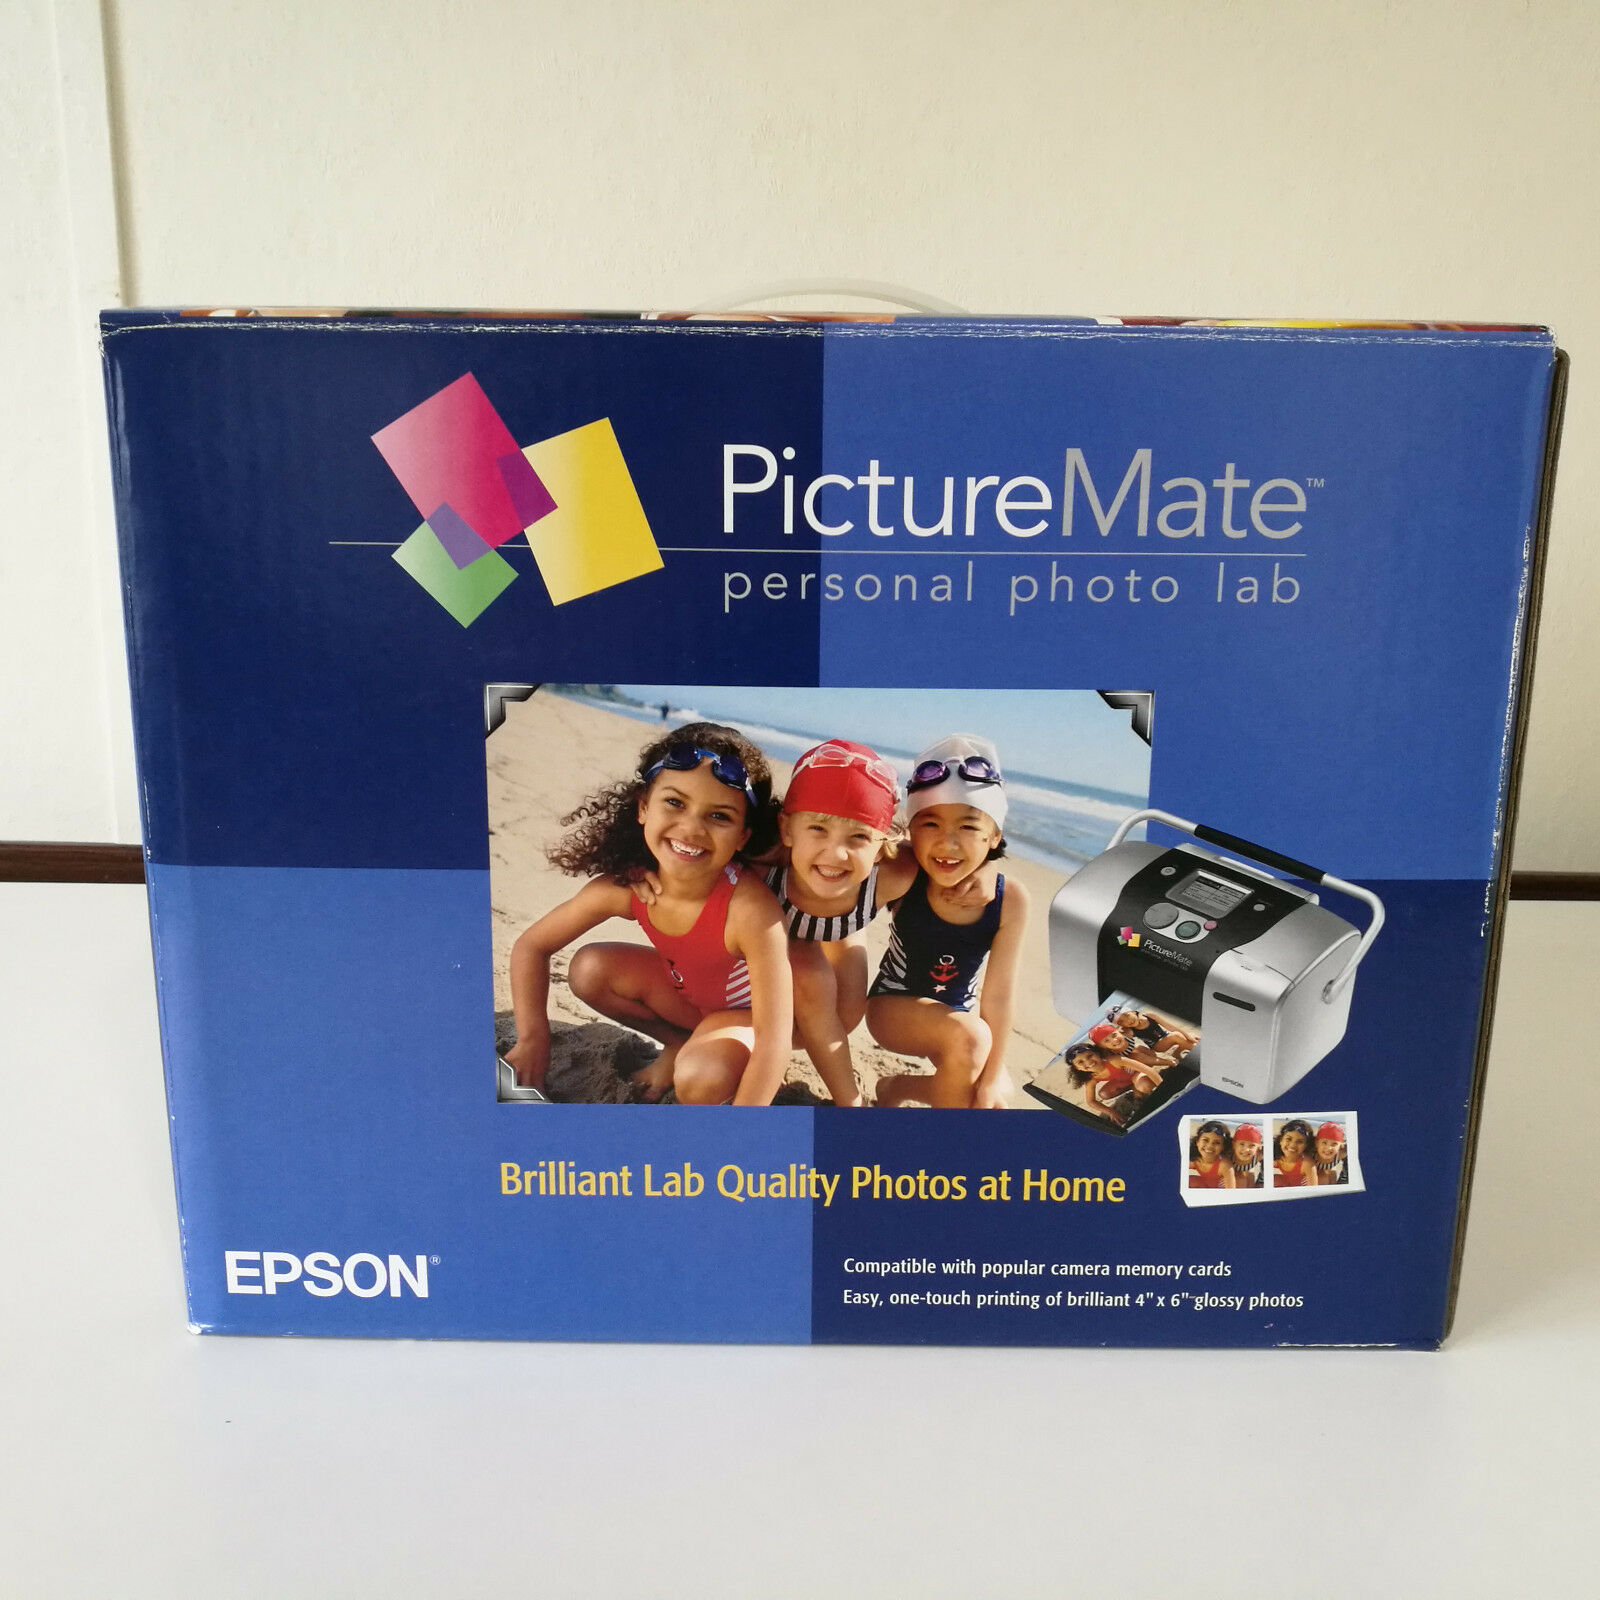 Picturemate personal photo lab ink